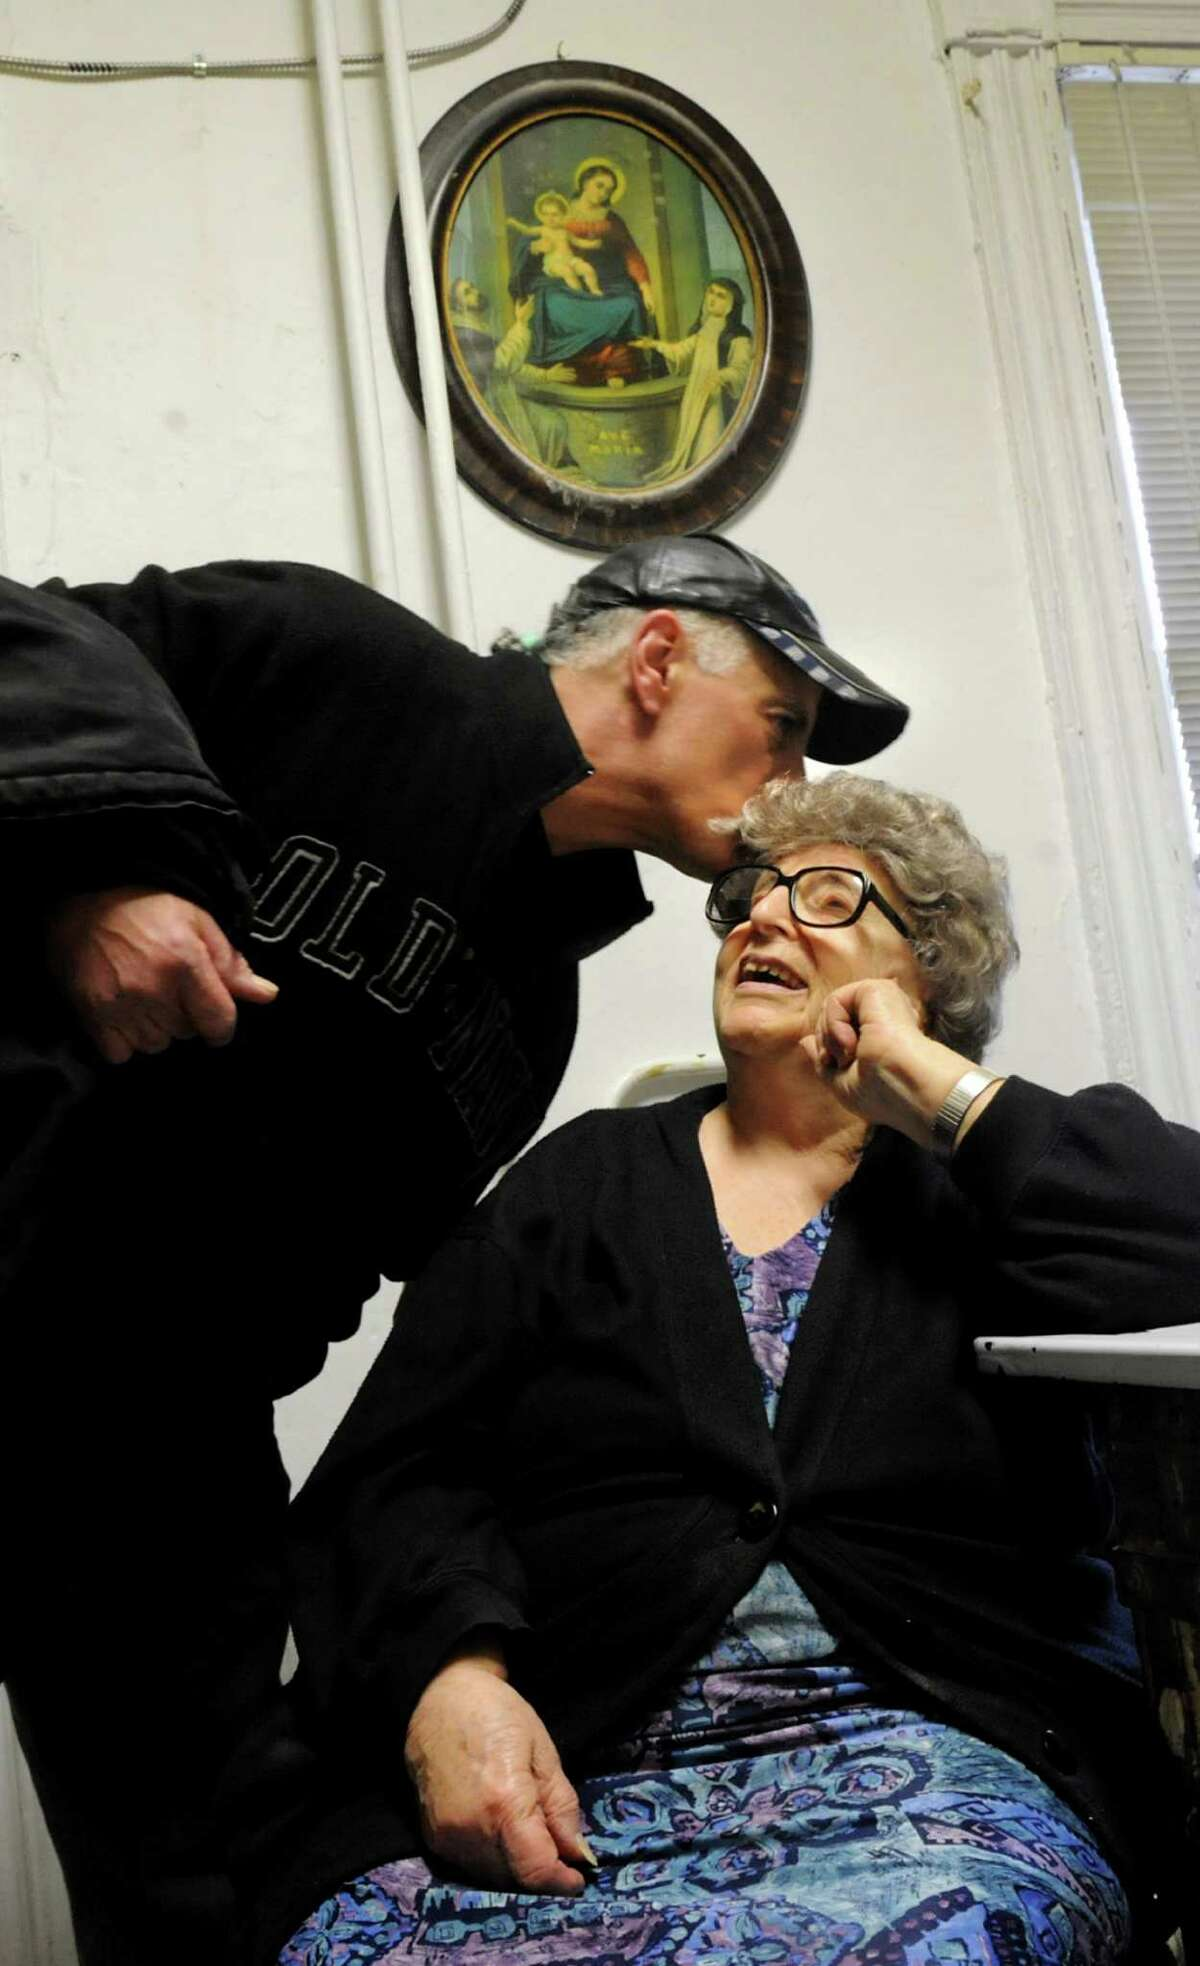 Employee Eddie DeLorenzo, left, gives Lilia Perreca Papa a good-bye kiss as he leaves work on Wednesday, March 13, 2013, at Perreca's Bakery in Schenectady, N.Y. (Cindy Schultz / Times Union)